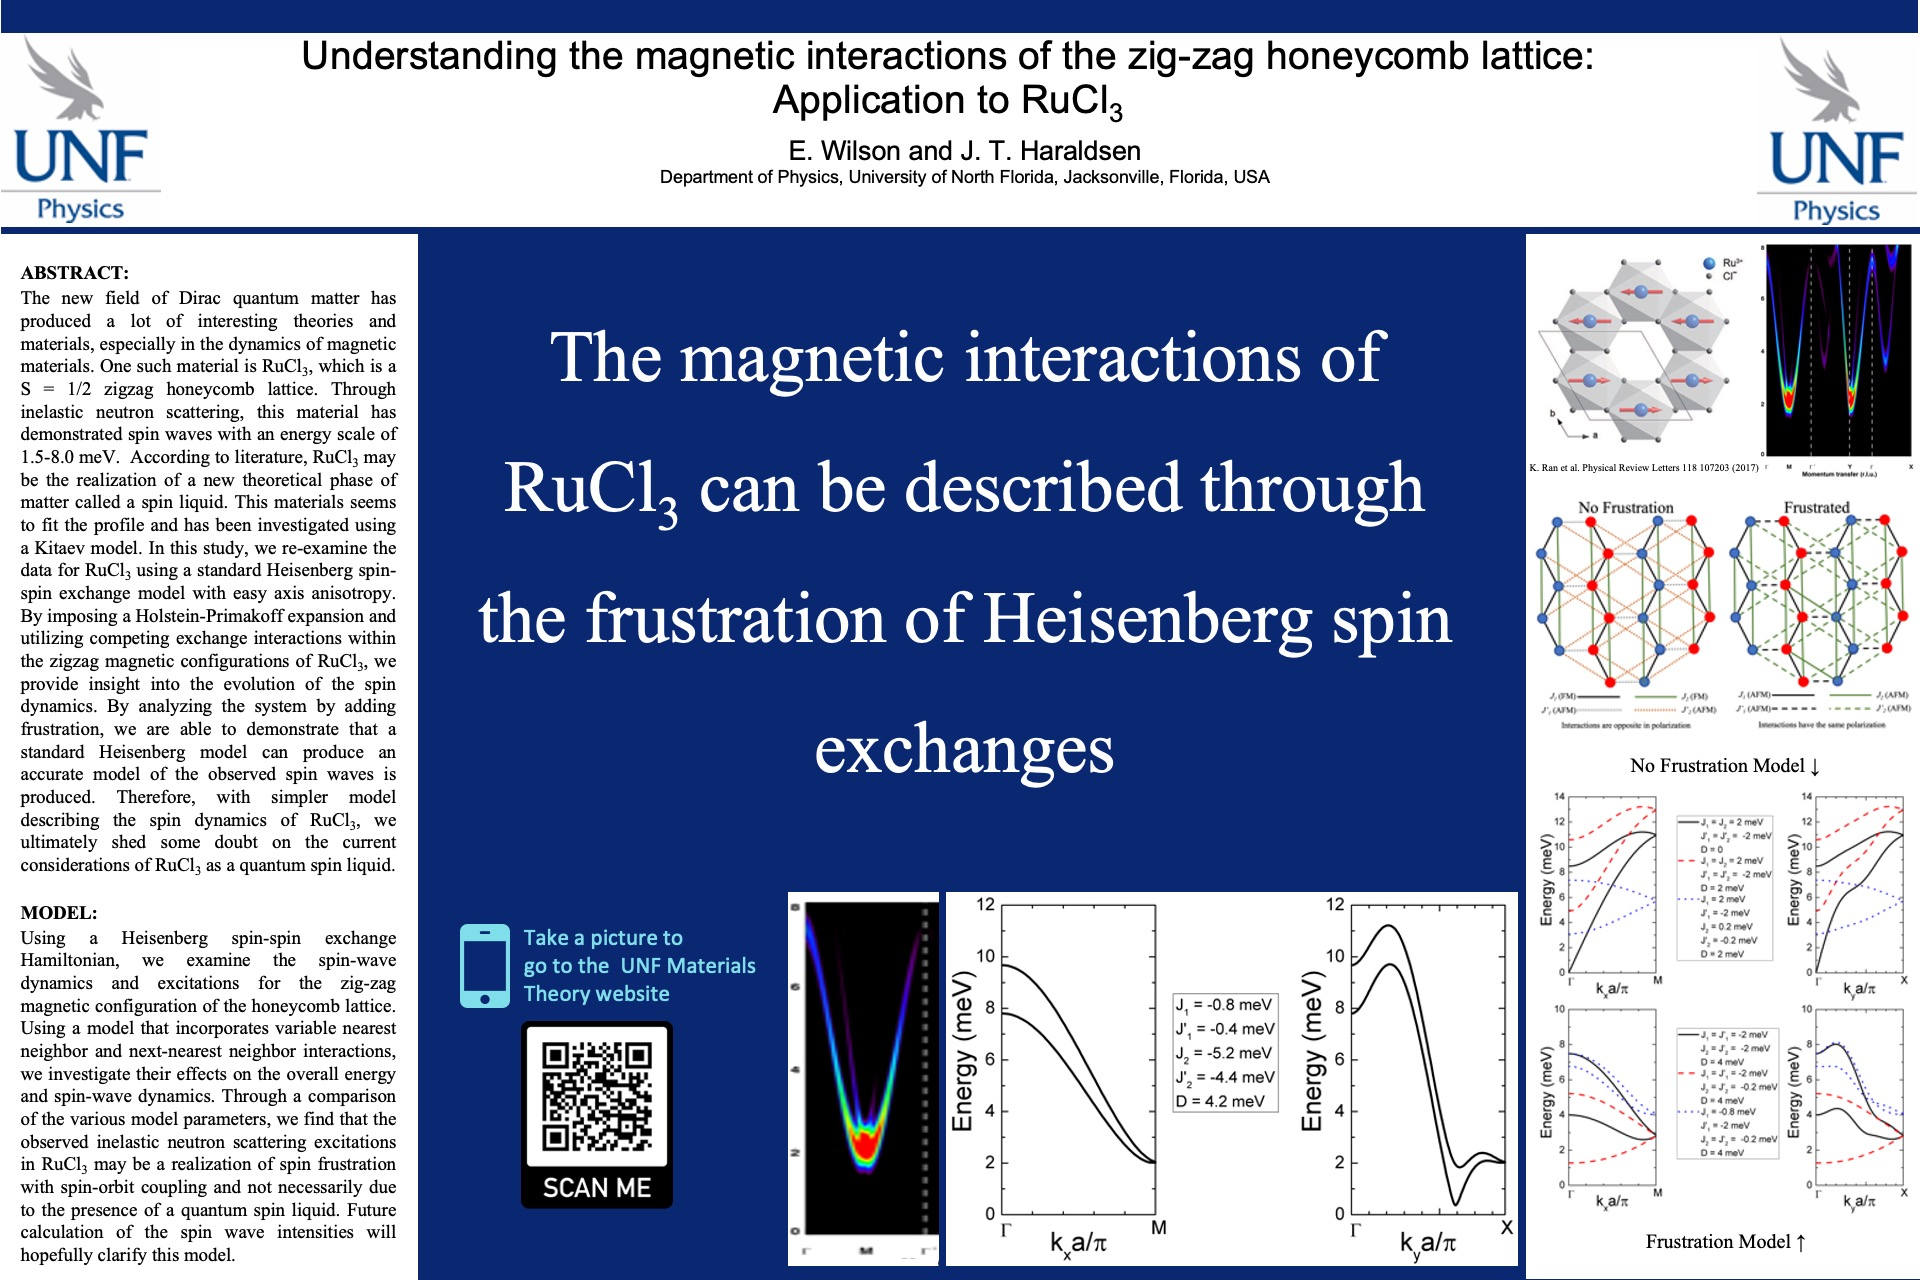 Understanding the magnetic interactions of the zig-zag honeycomb lattice: Application to RuCl3 poster